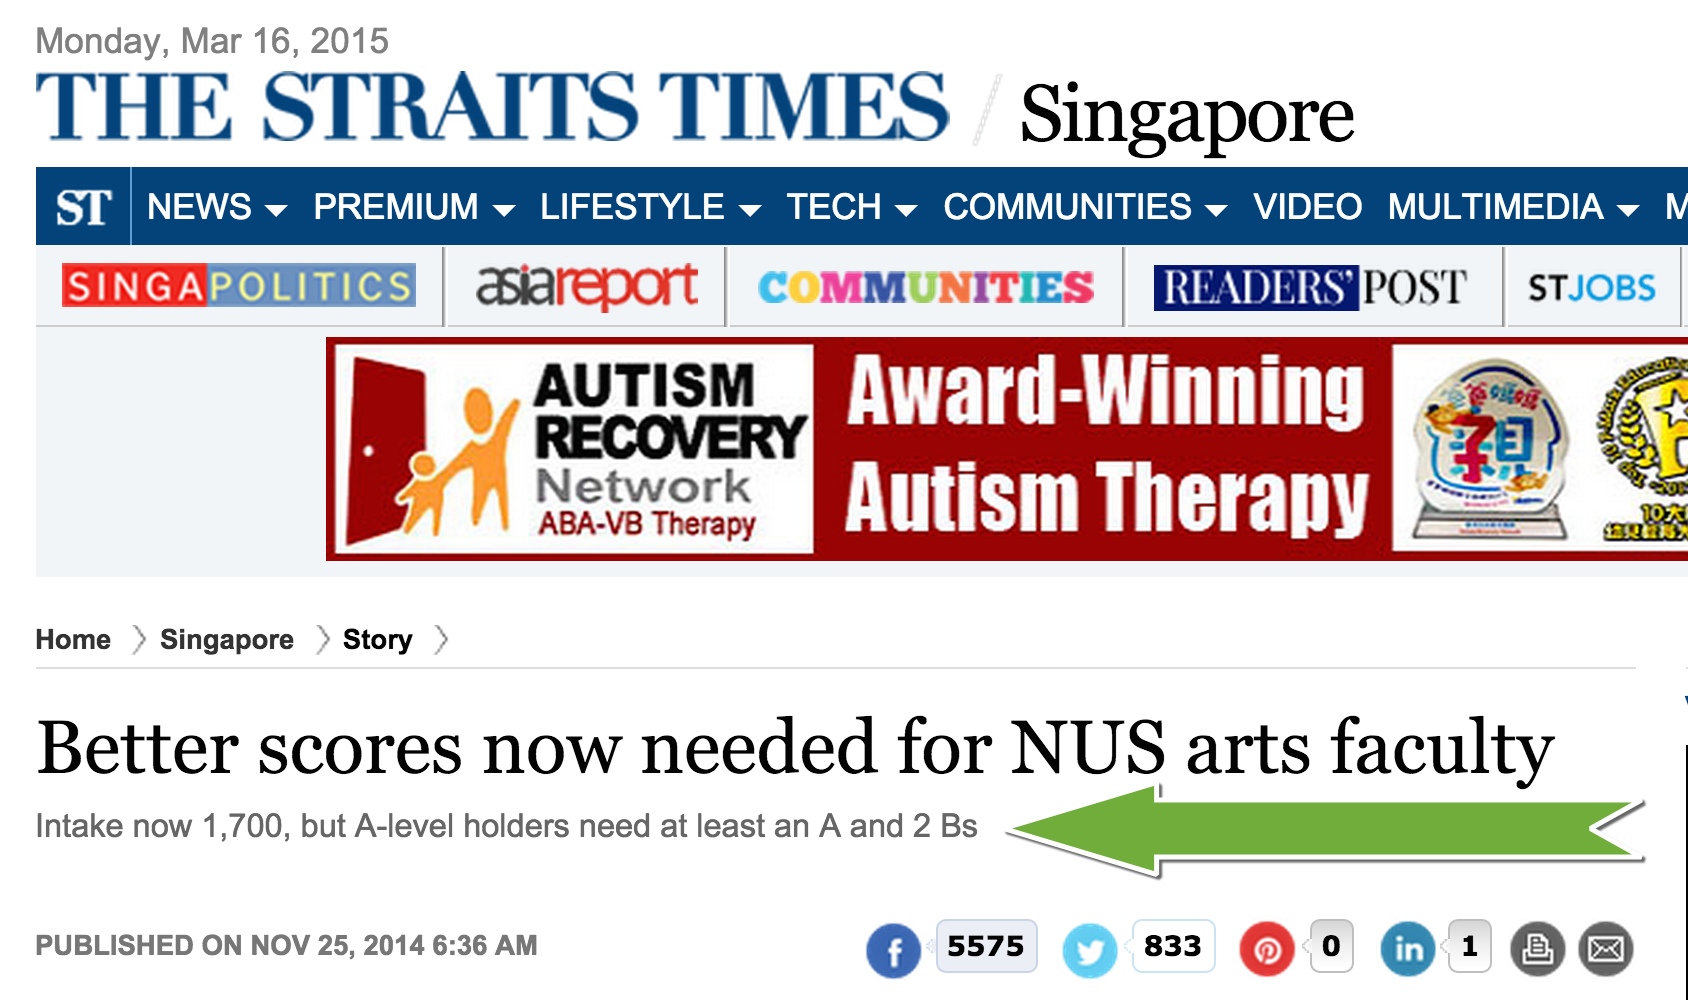 Better scores now needed for NUS arts faculty